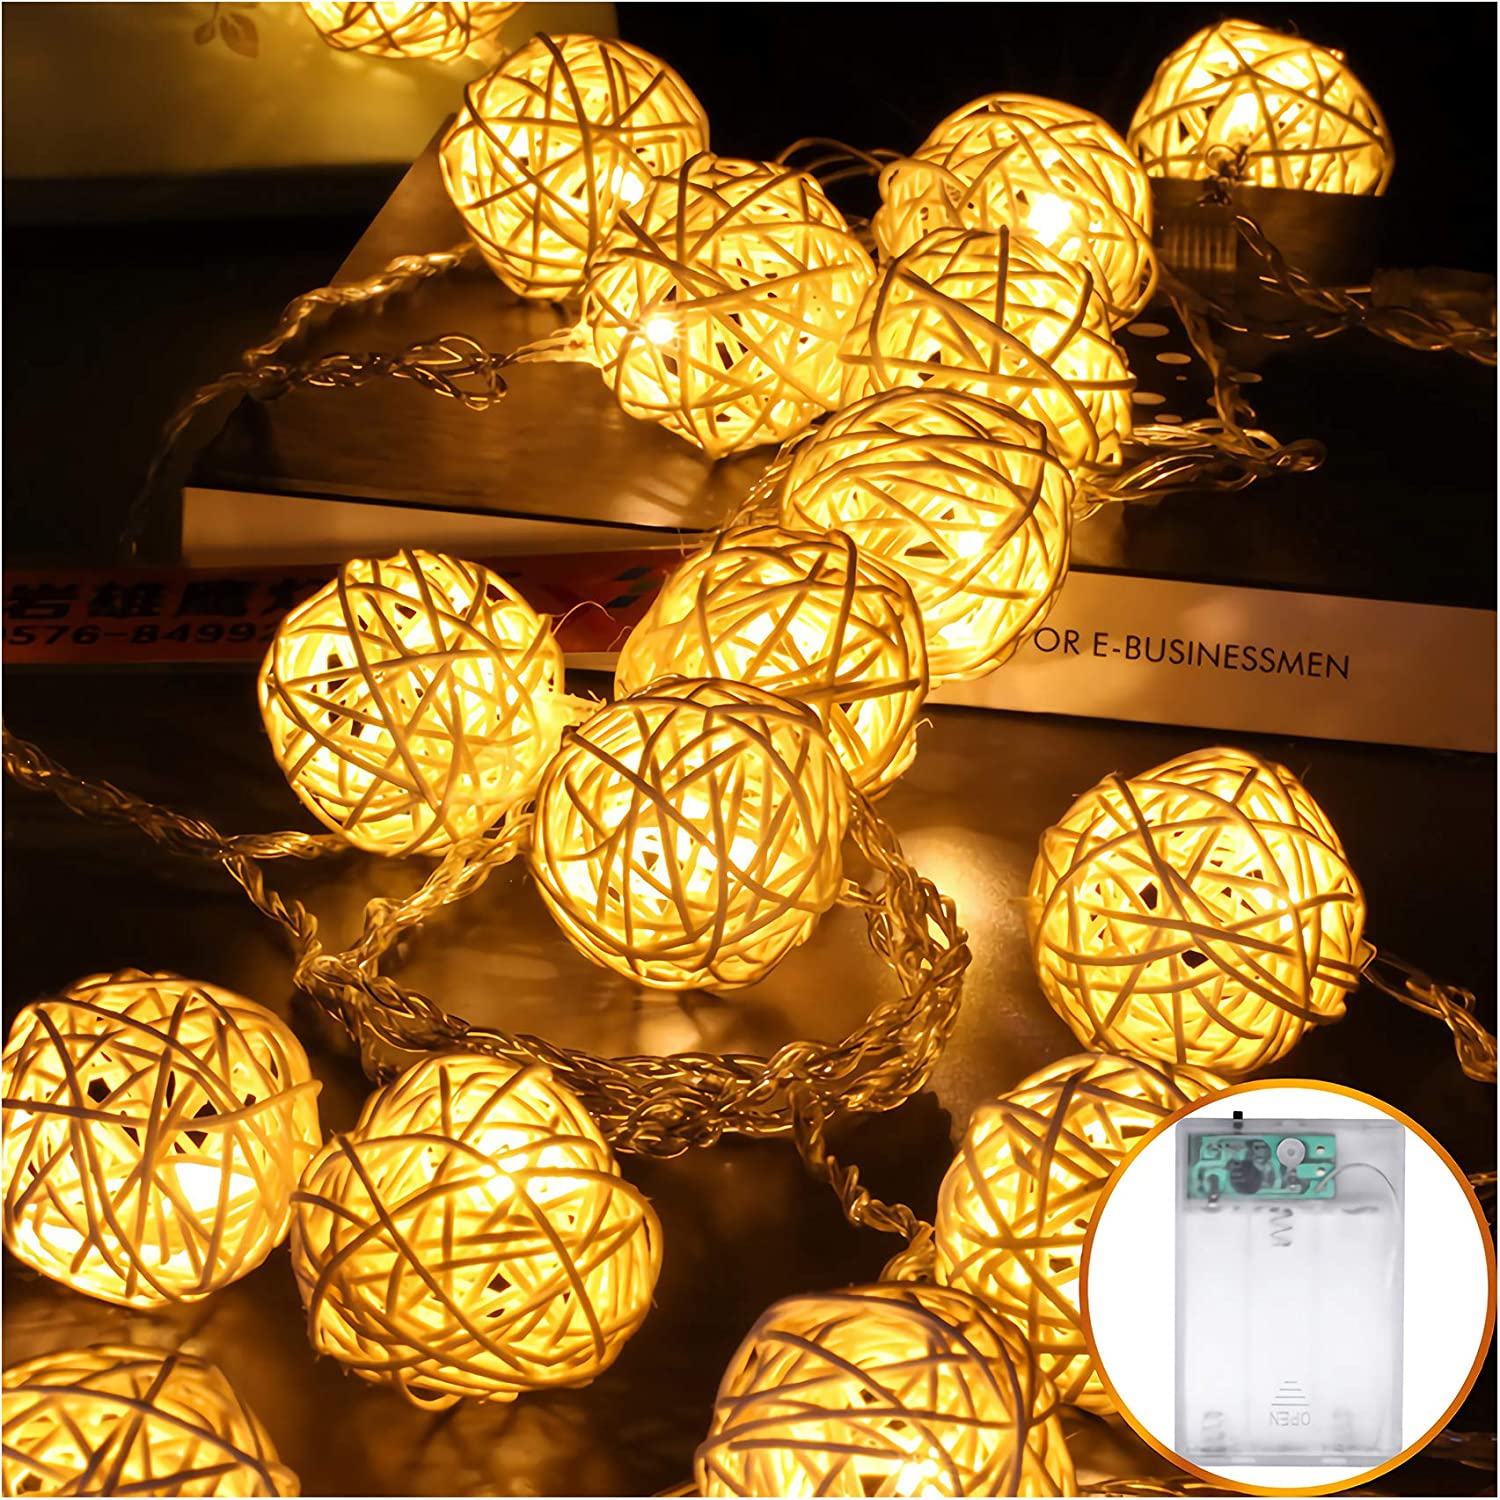 HYAL LUZ Battery Operated 20 LED String Lights, 16.4ft 20 Globe Rattan Balls Christmas Light, Indoor Fairy String Lights Decorative for Bedroom Party (Warm White)